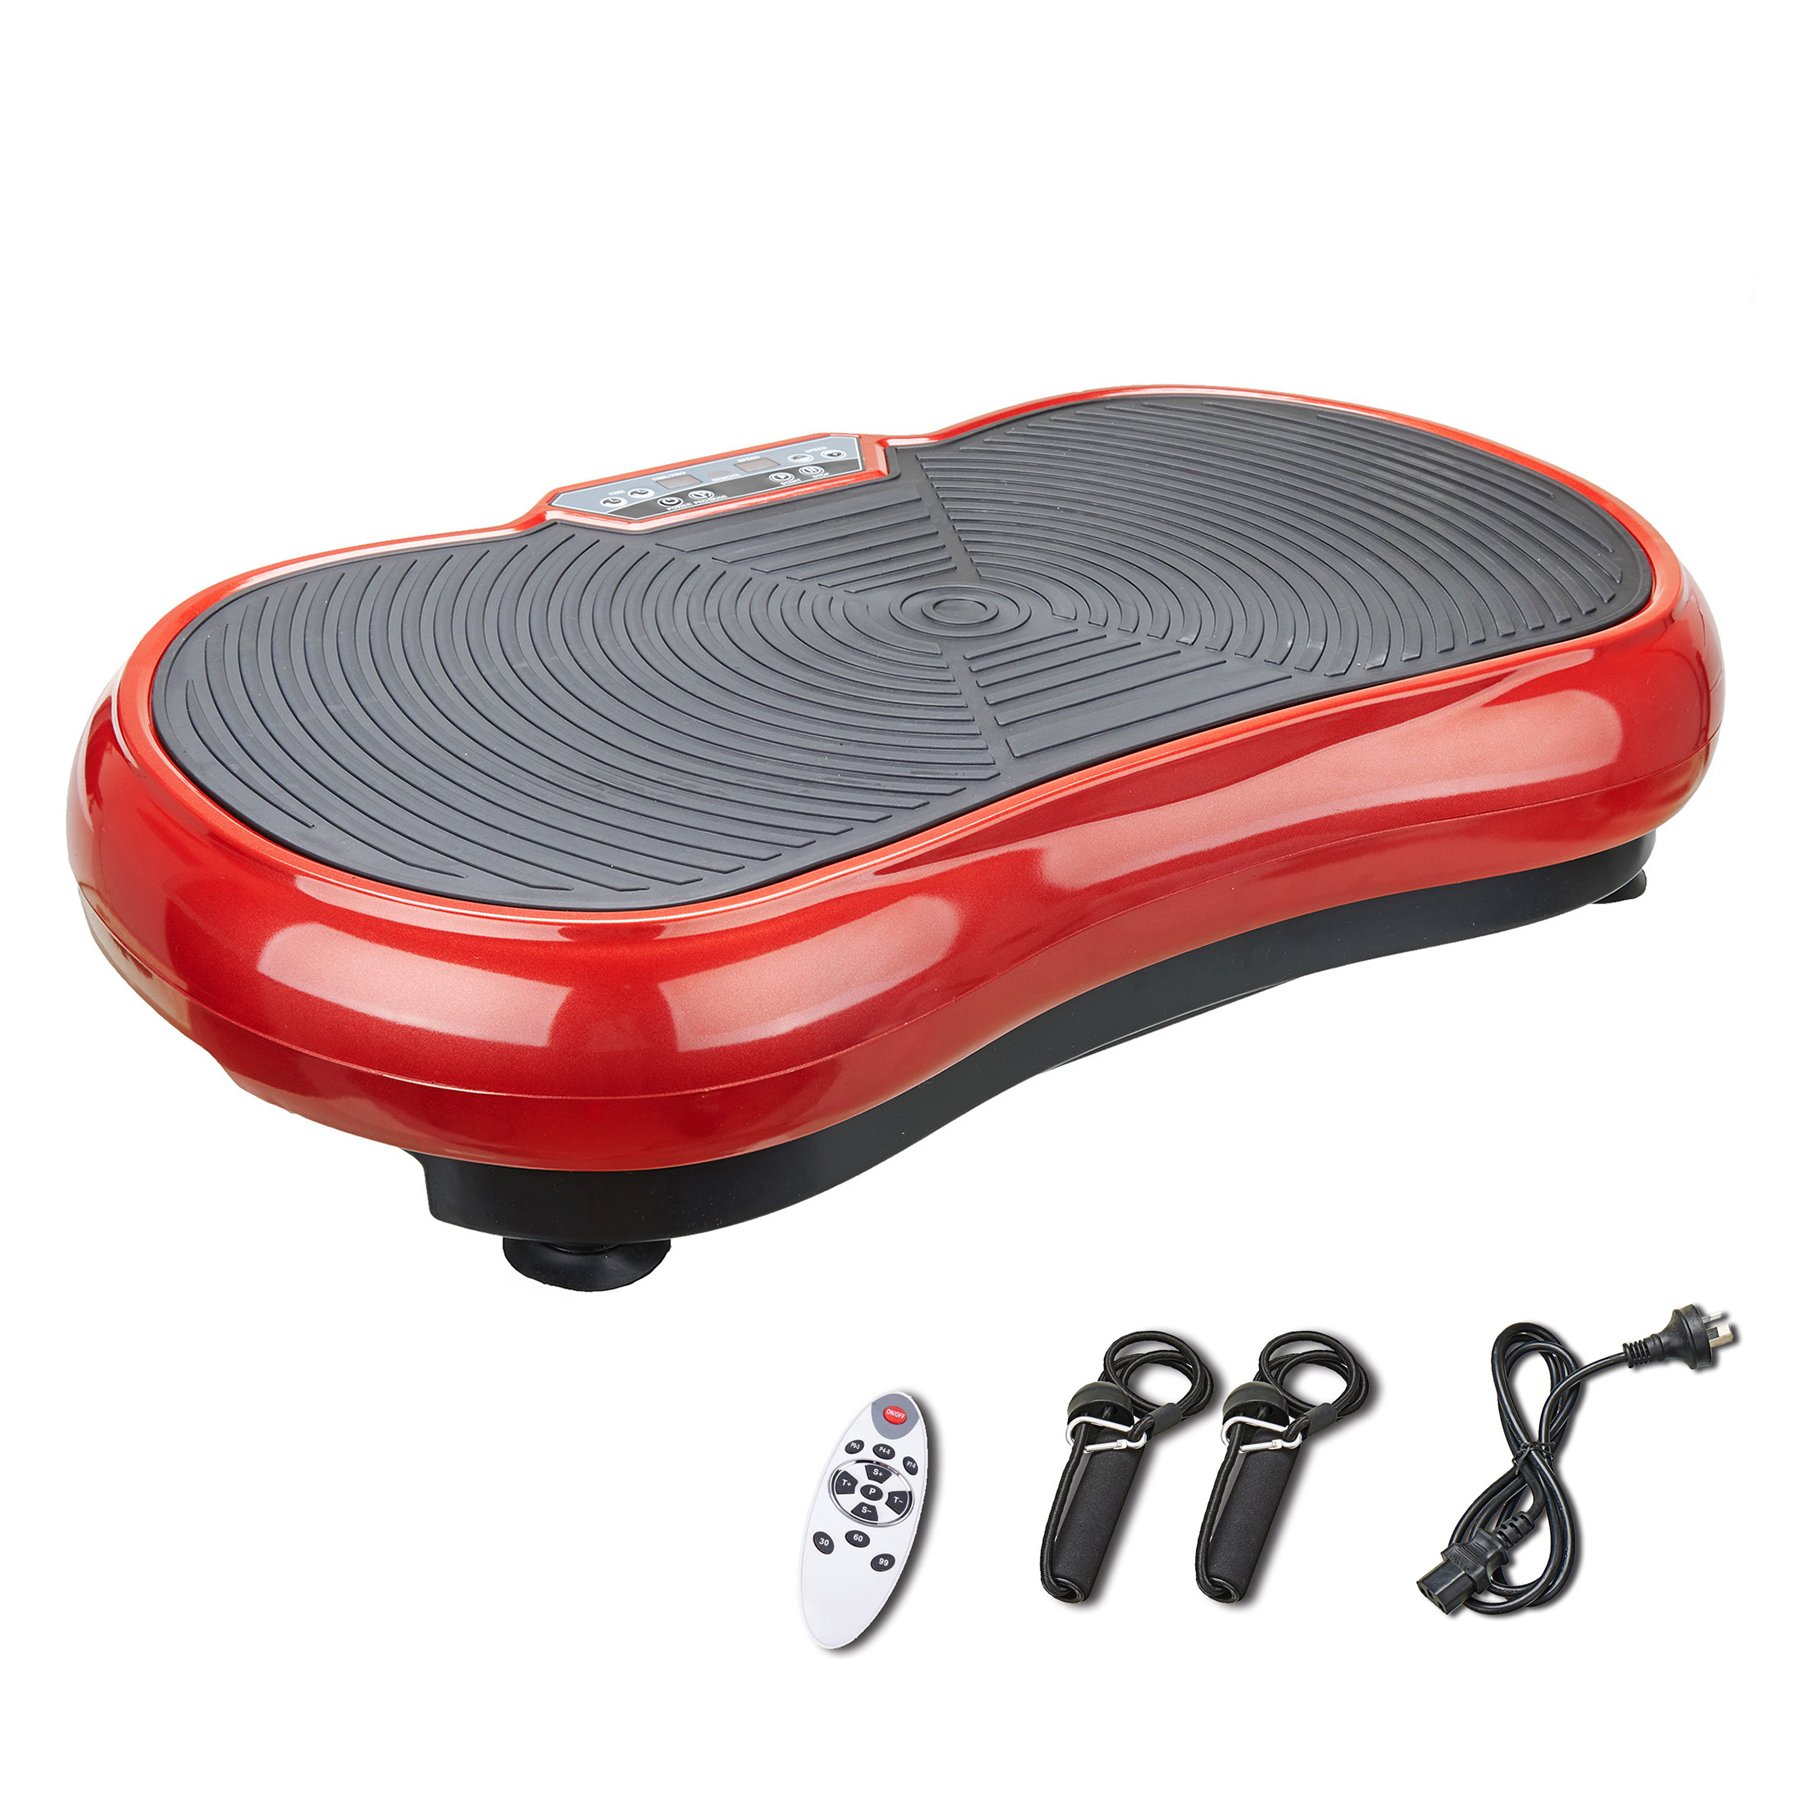 Pinty Fitness Vibration Platform - Whole Body Vibration Machine Crazy Fit Vibration Plate with Remote Control and Resistance Bands by Pinty (Image #1)